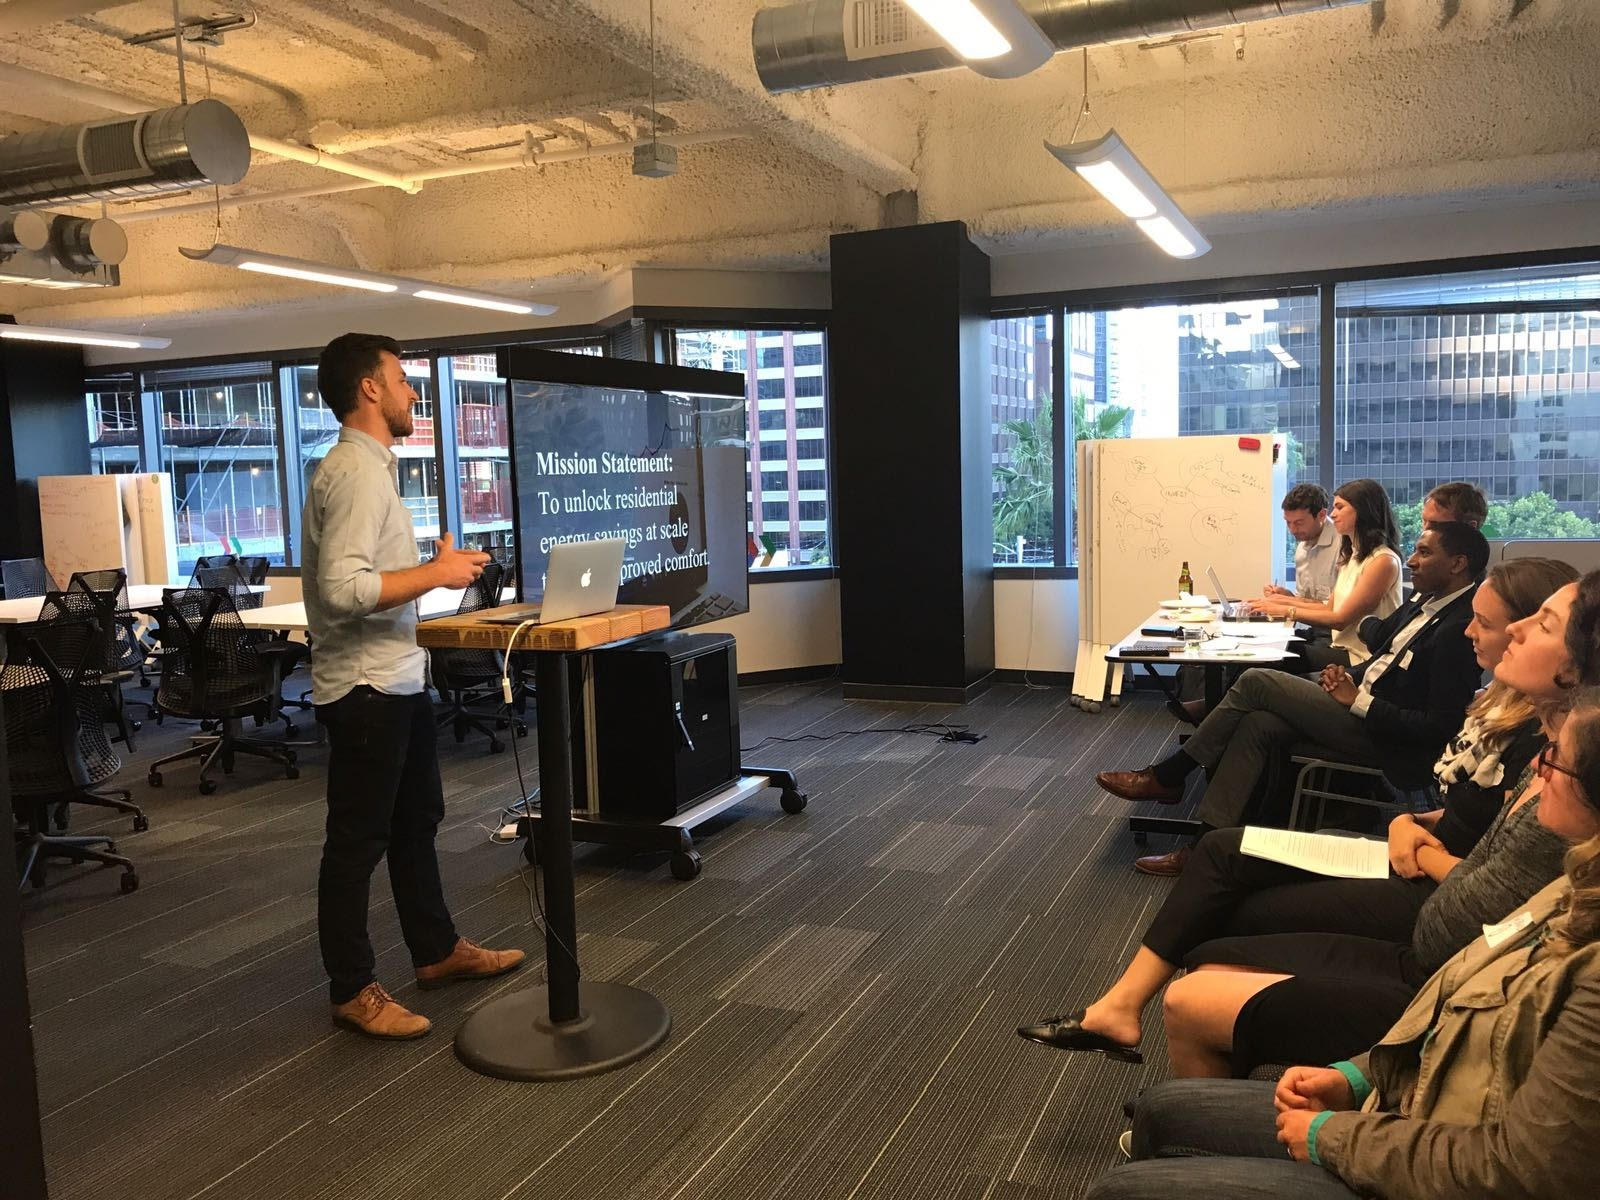 Nate pitching Cozee during the SF Spring 2017 Fellowship Business Pitch Night